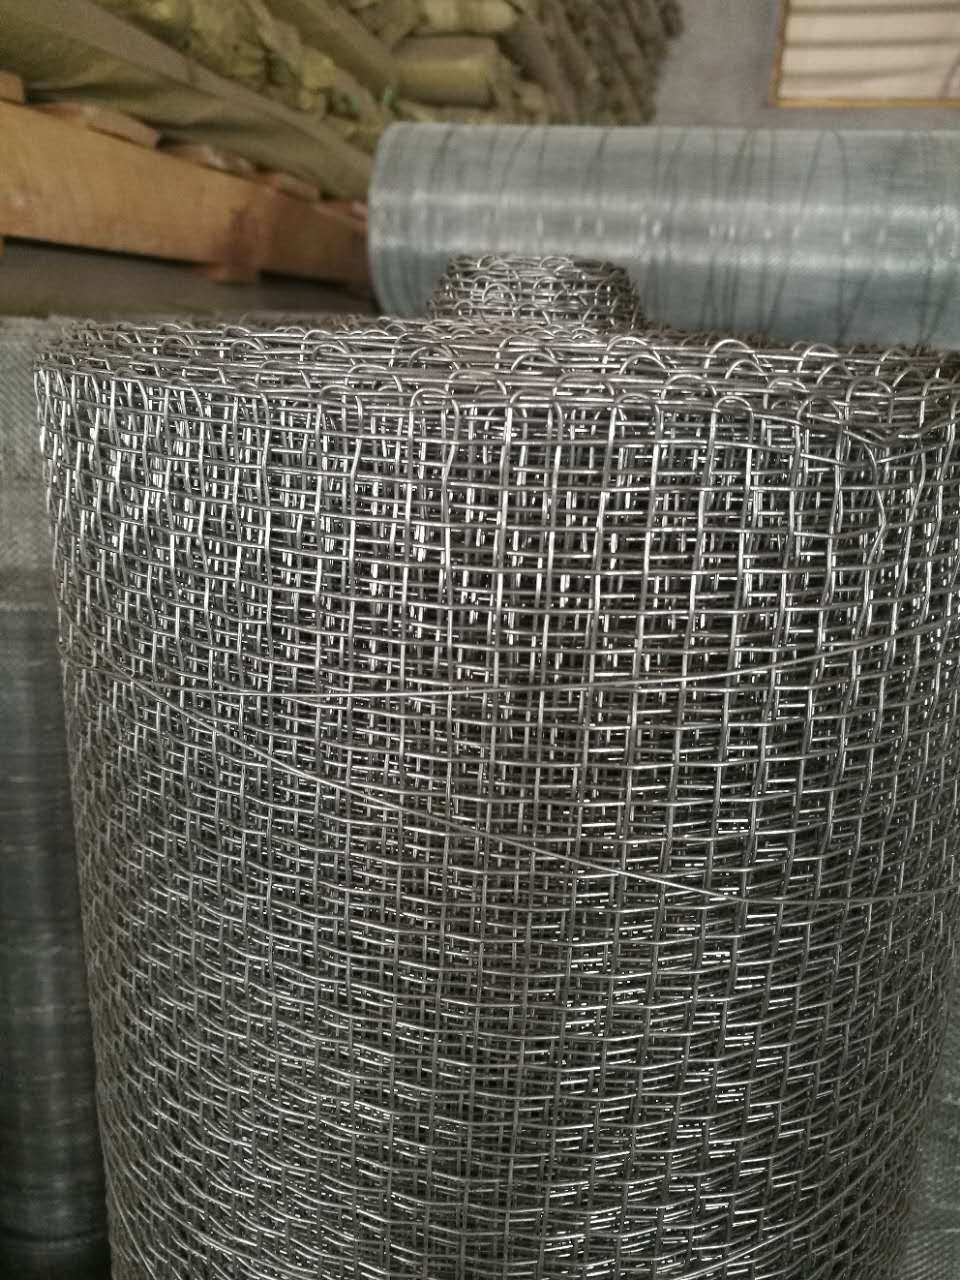 Heavy Duty Woven Wire Screen Hooked Mine Sieving Mesh - Buy Mine ...